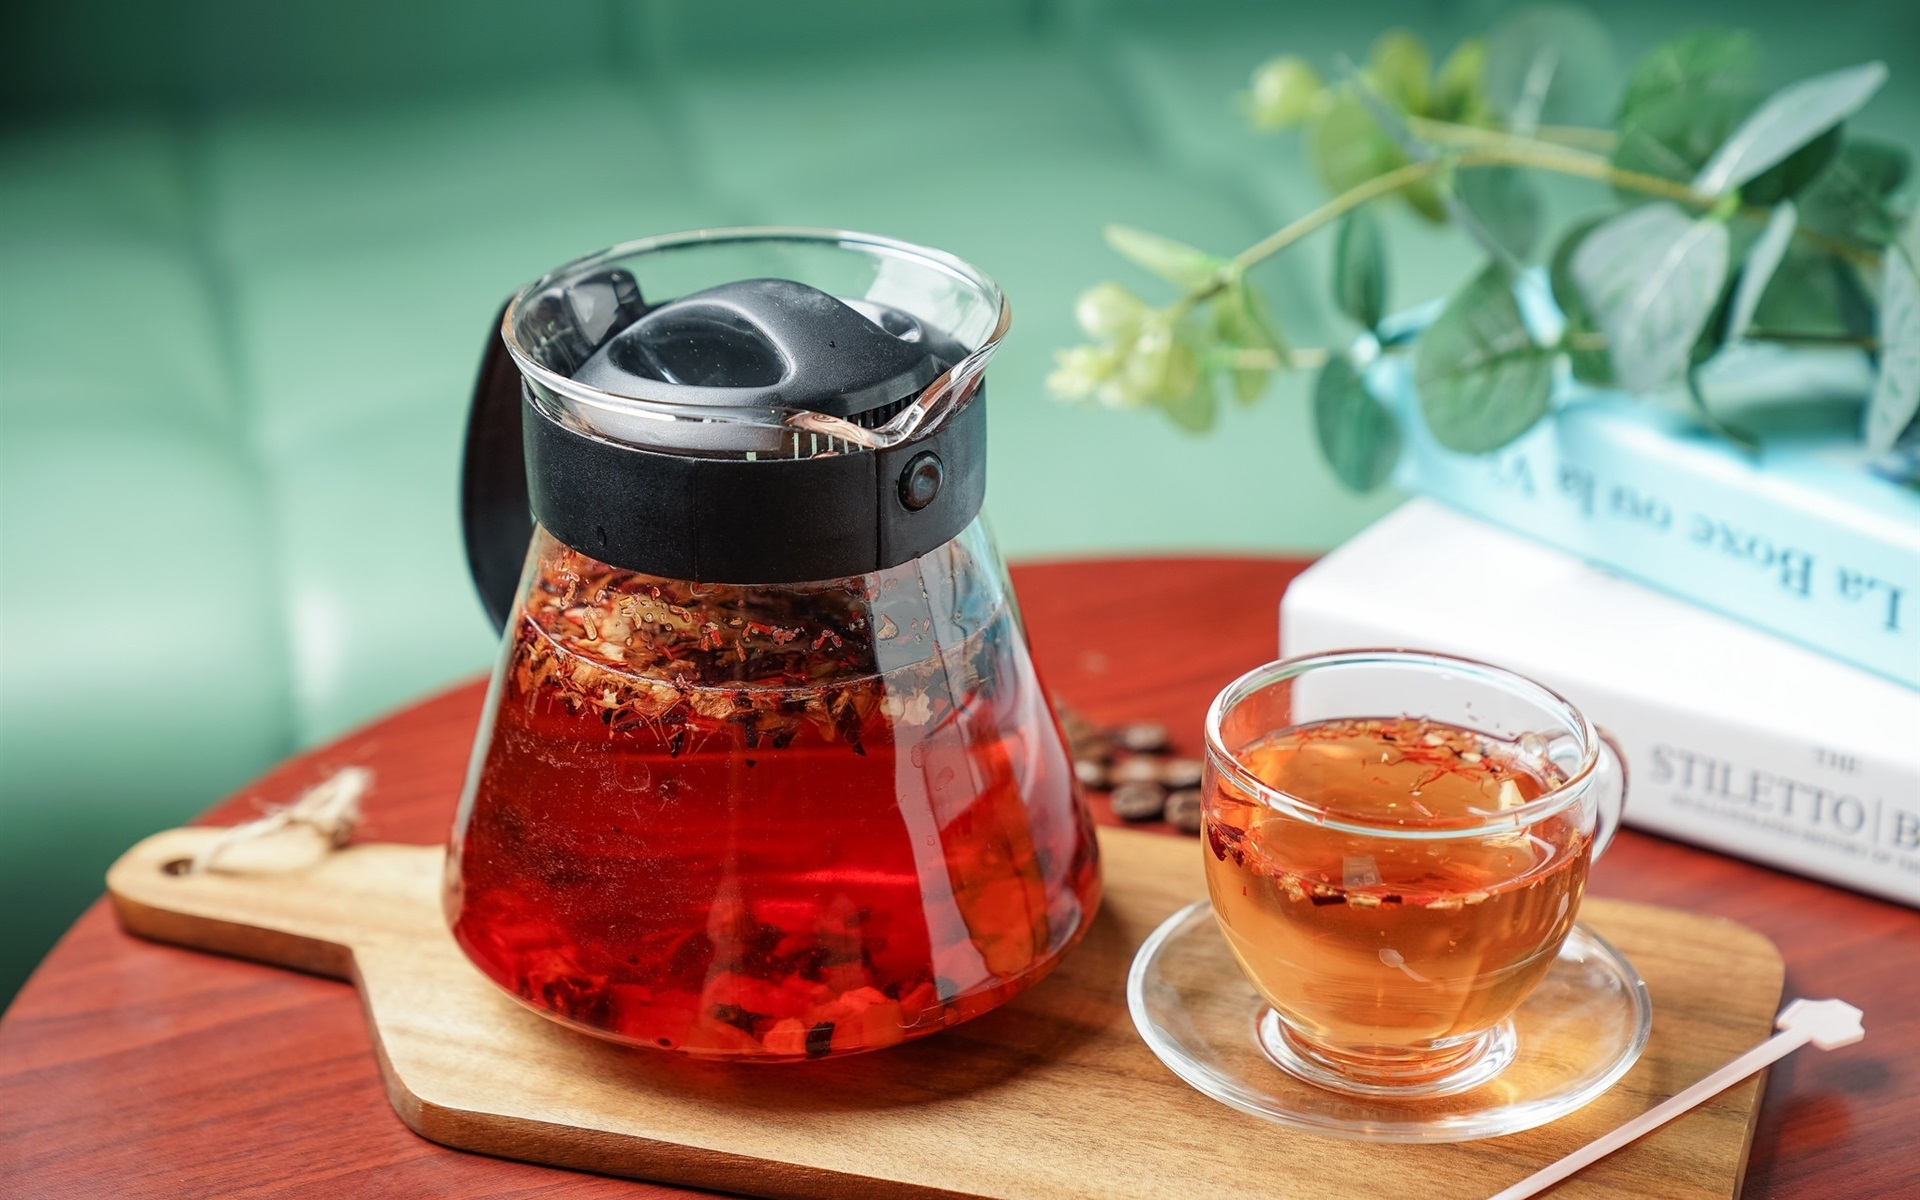 Wallpaper Glass Cup Teapot Tea 1920x1200 Hd Picture Image